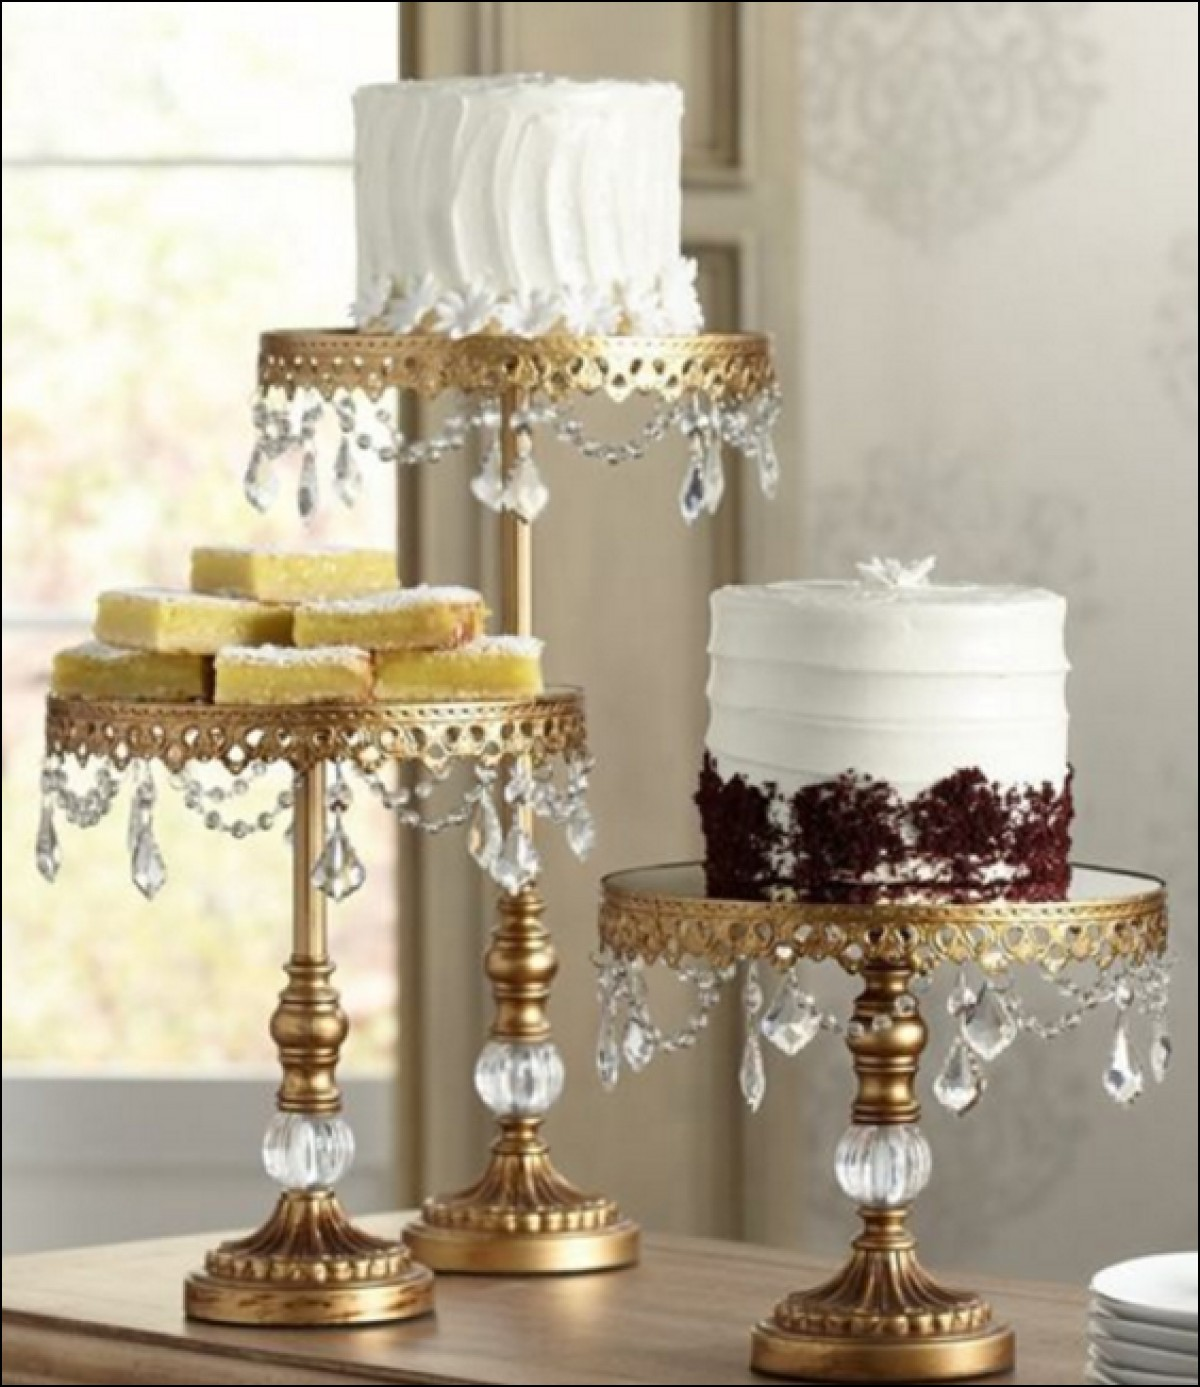 cake stands hire / rent - equipment - dublin 6 - rentmystuff.ie